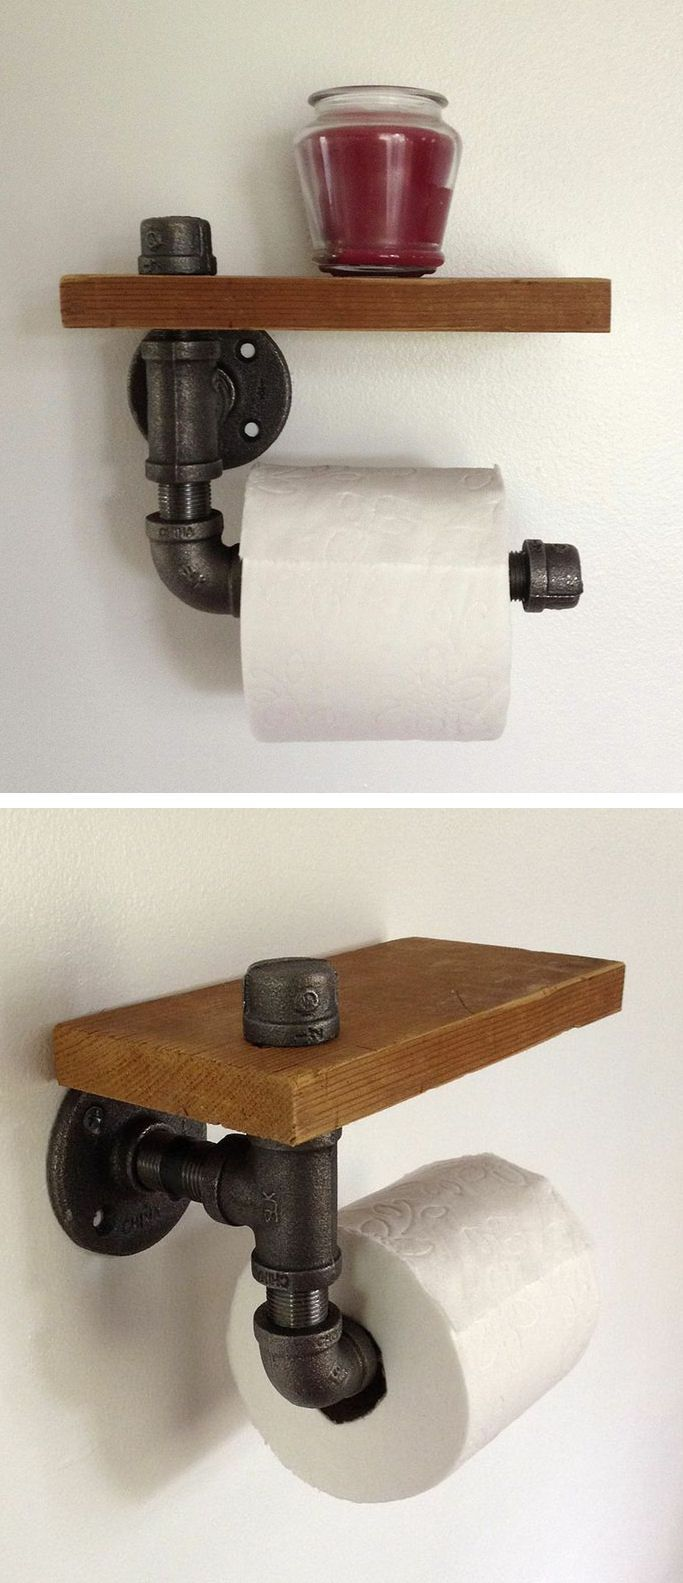 9. Pipe Tissue Holder